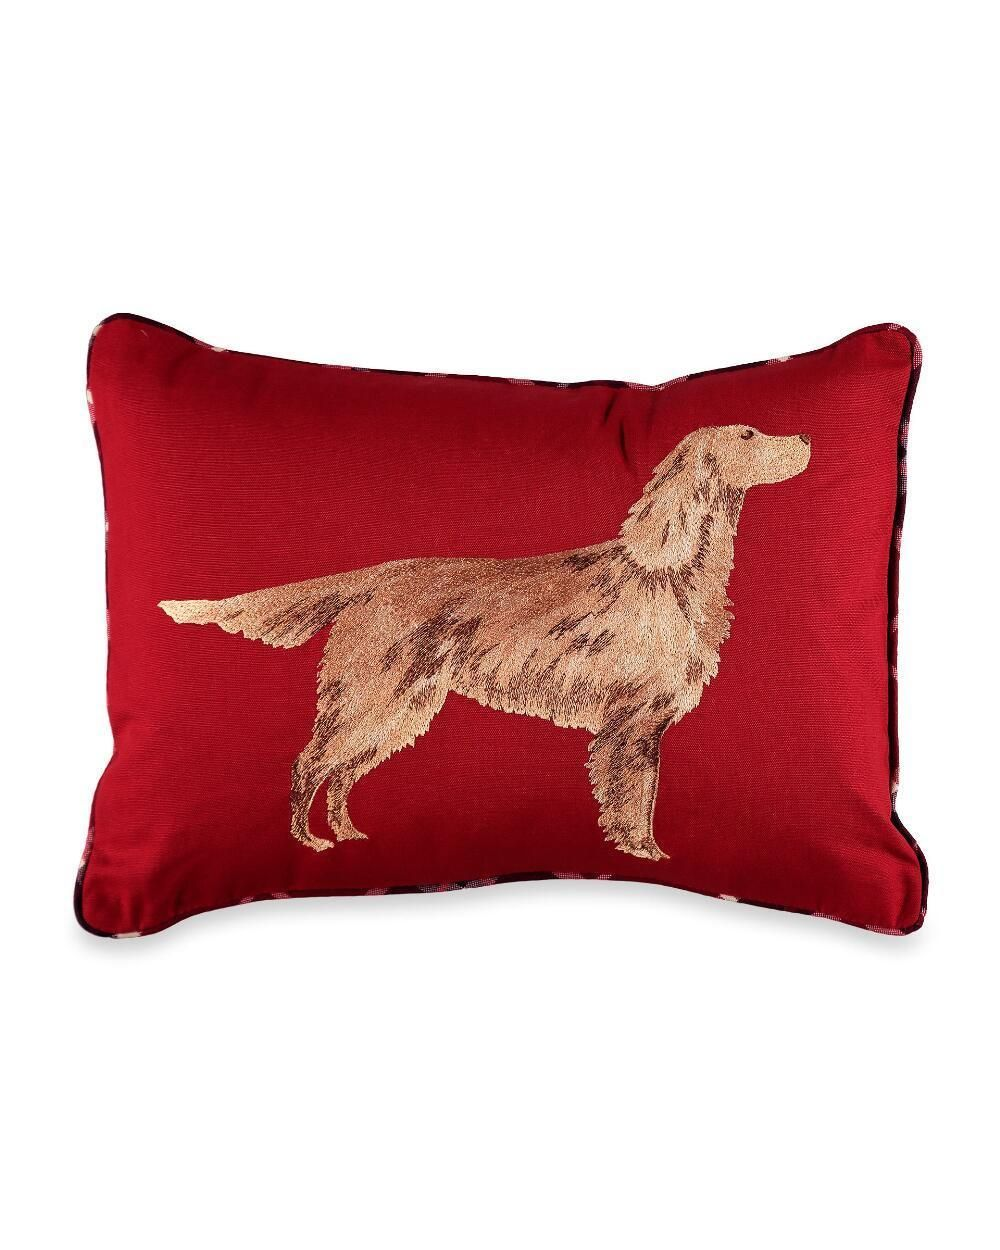 Decorative Bed Pillows 115630 58 Red Laura Ashley